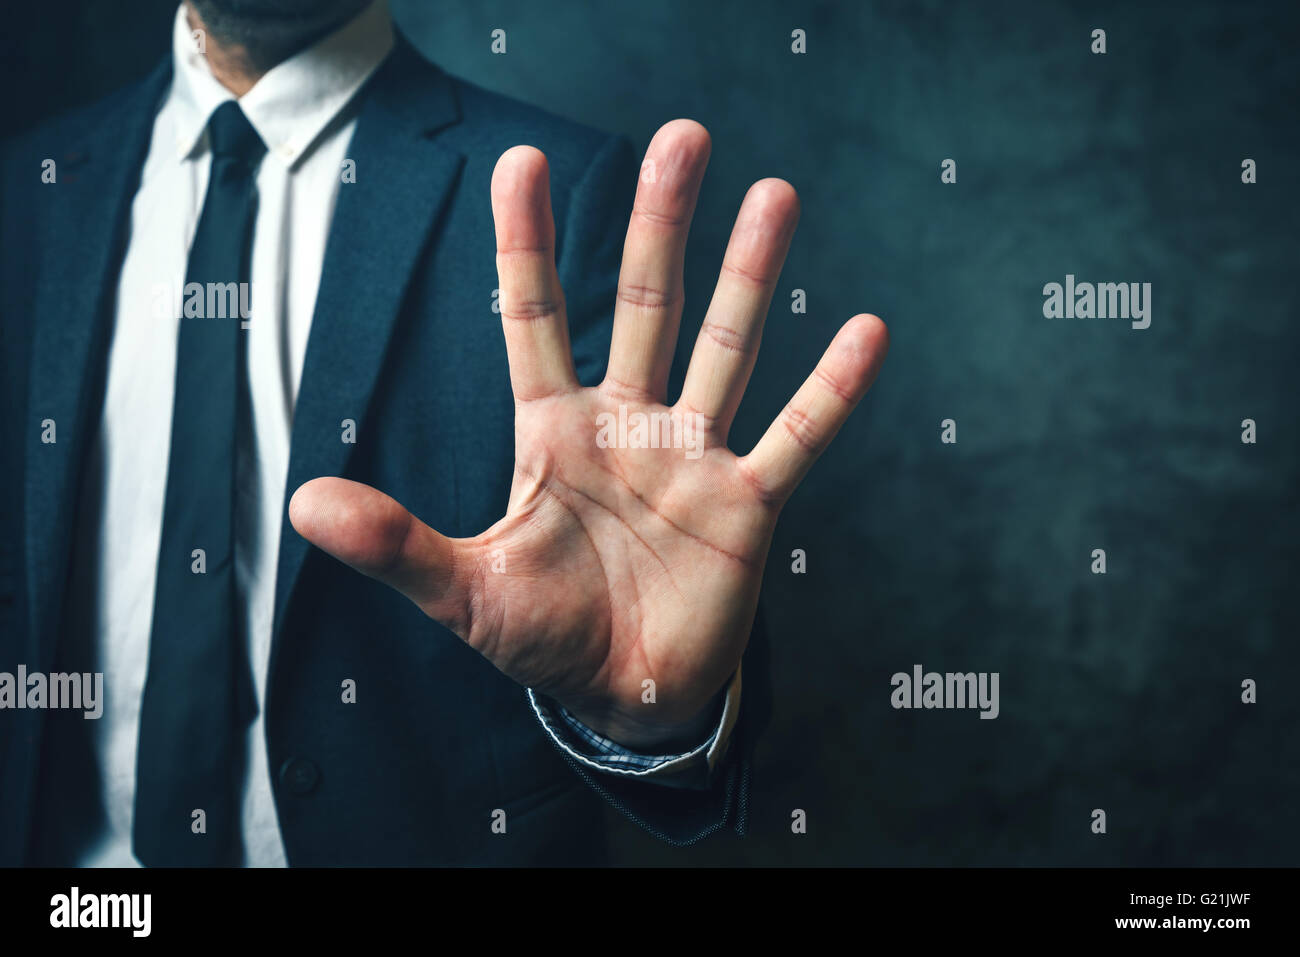 Businessman with long fingers, concept of relation between body parts and intelligence - Stock Image